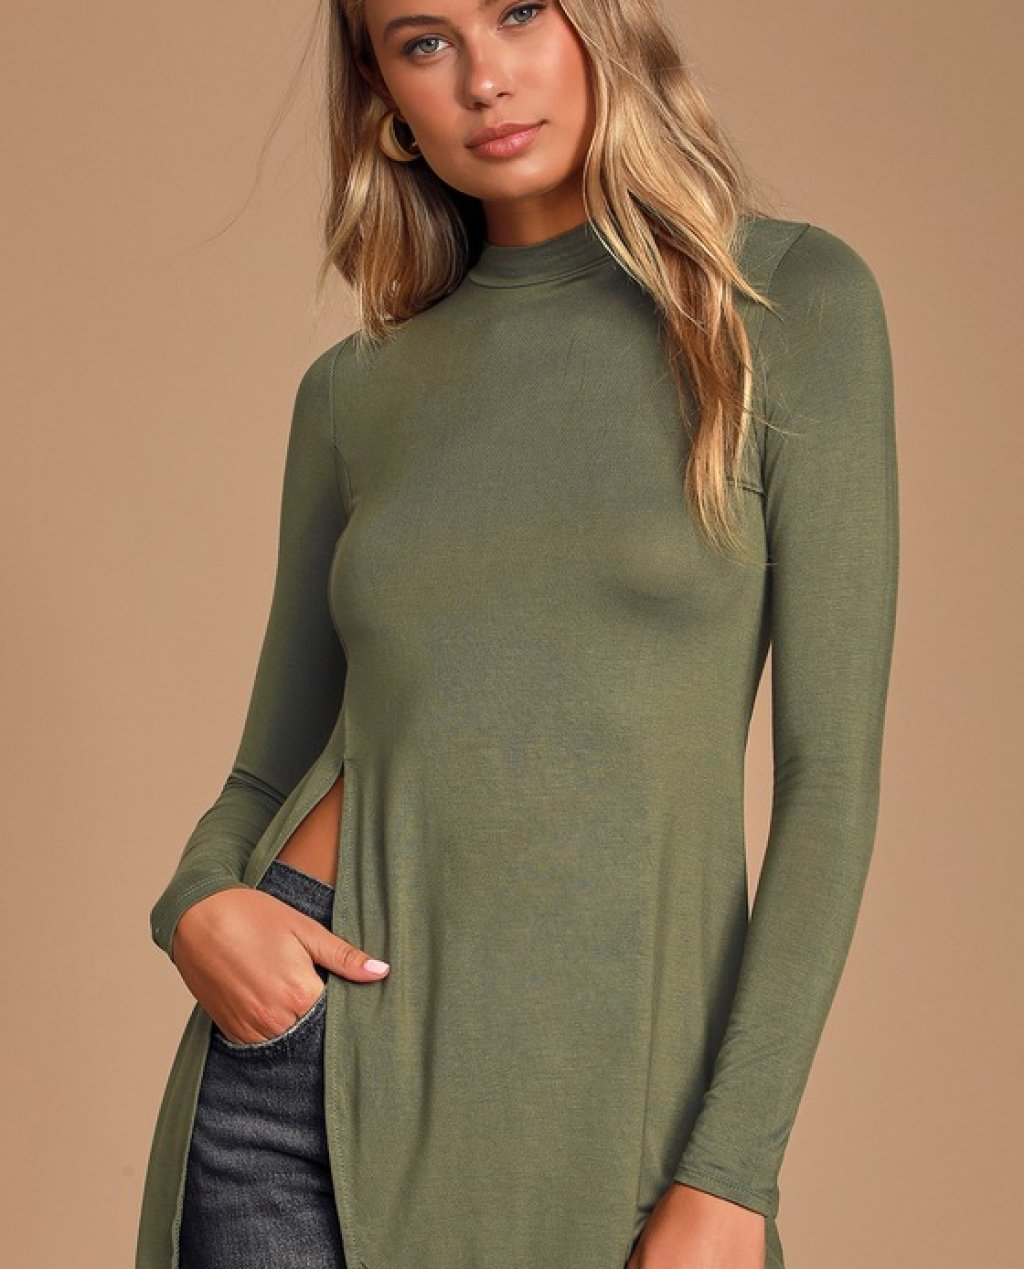 Eyes On Me Olive Green Long Sleeve Tunic Top